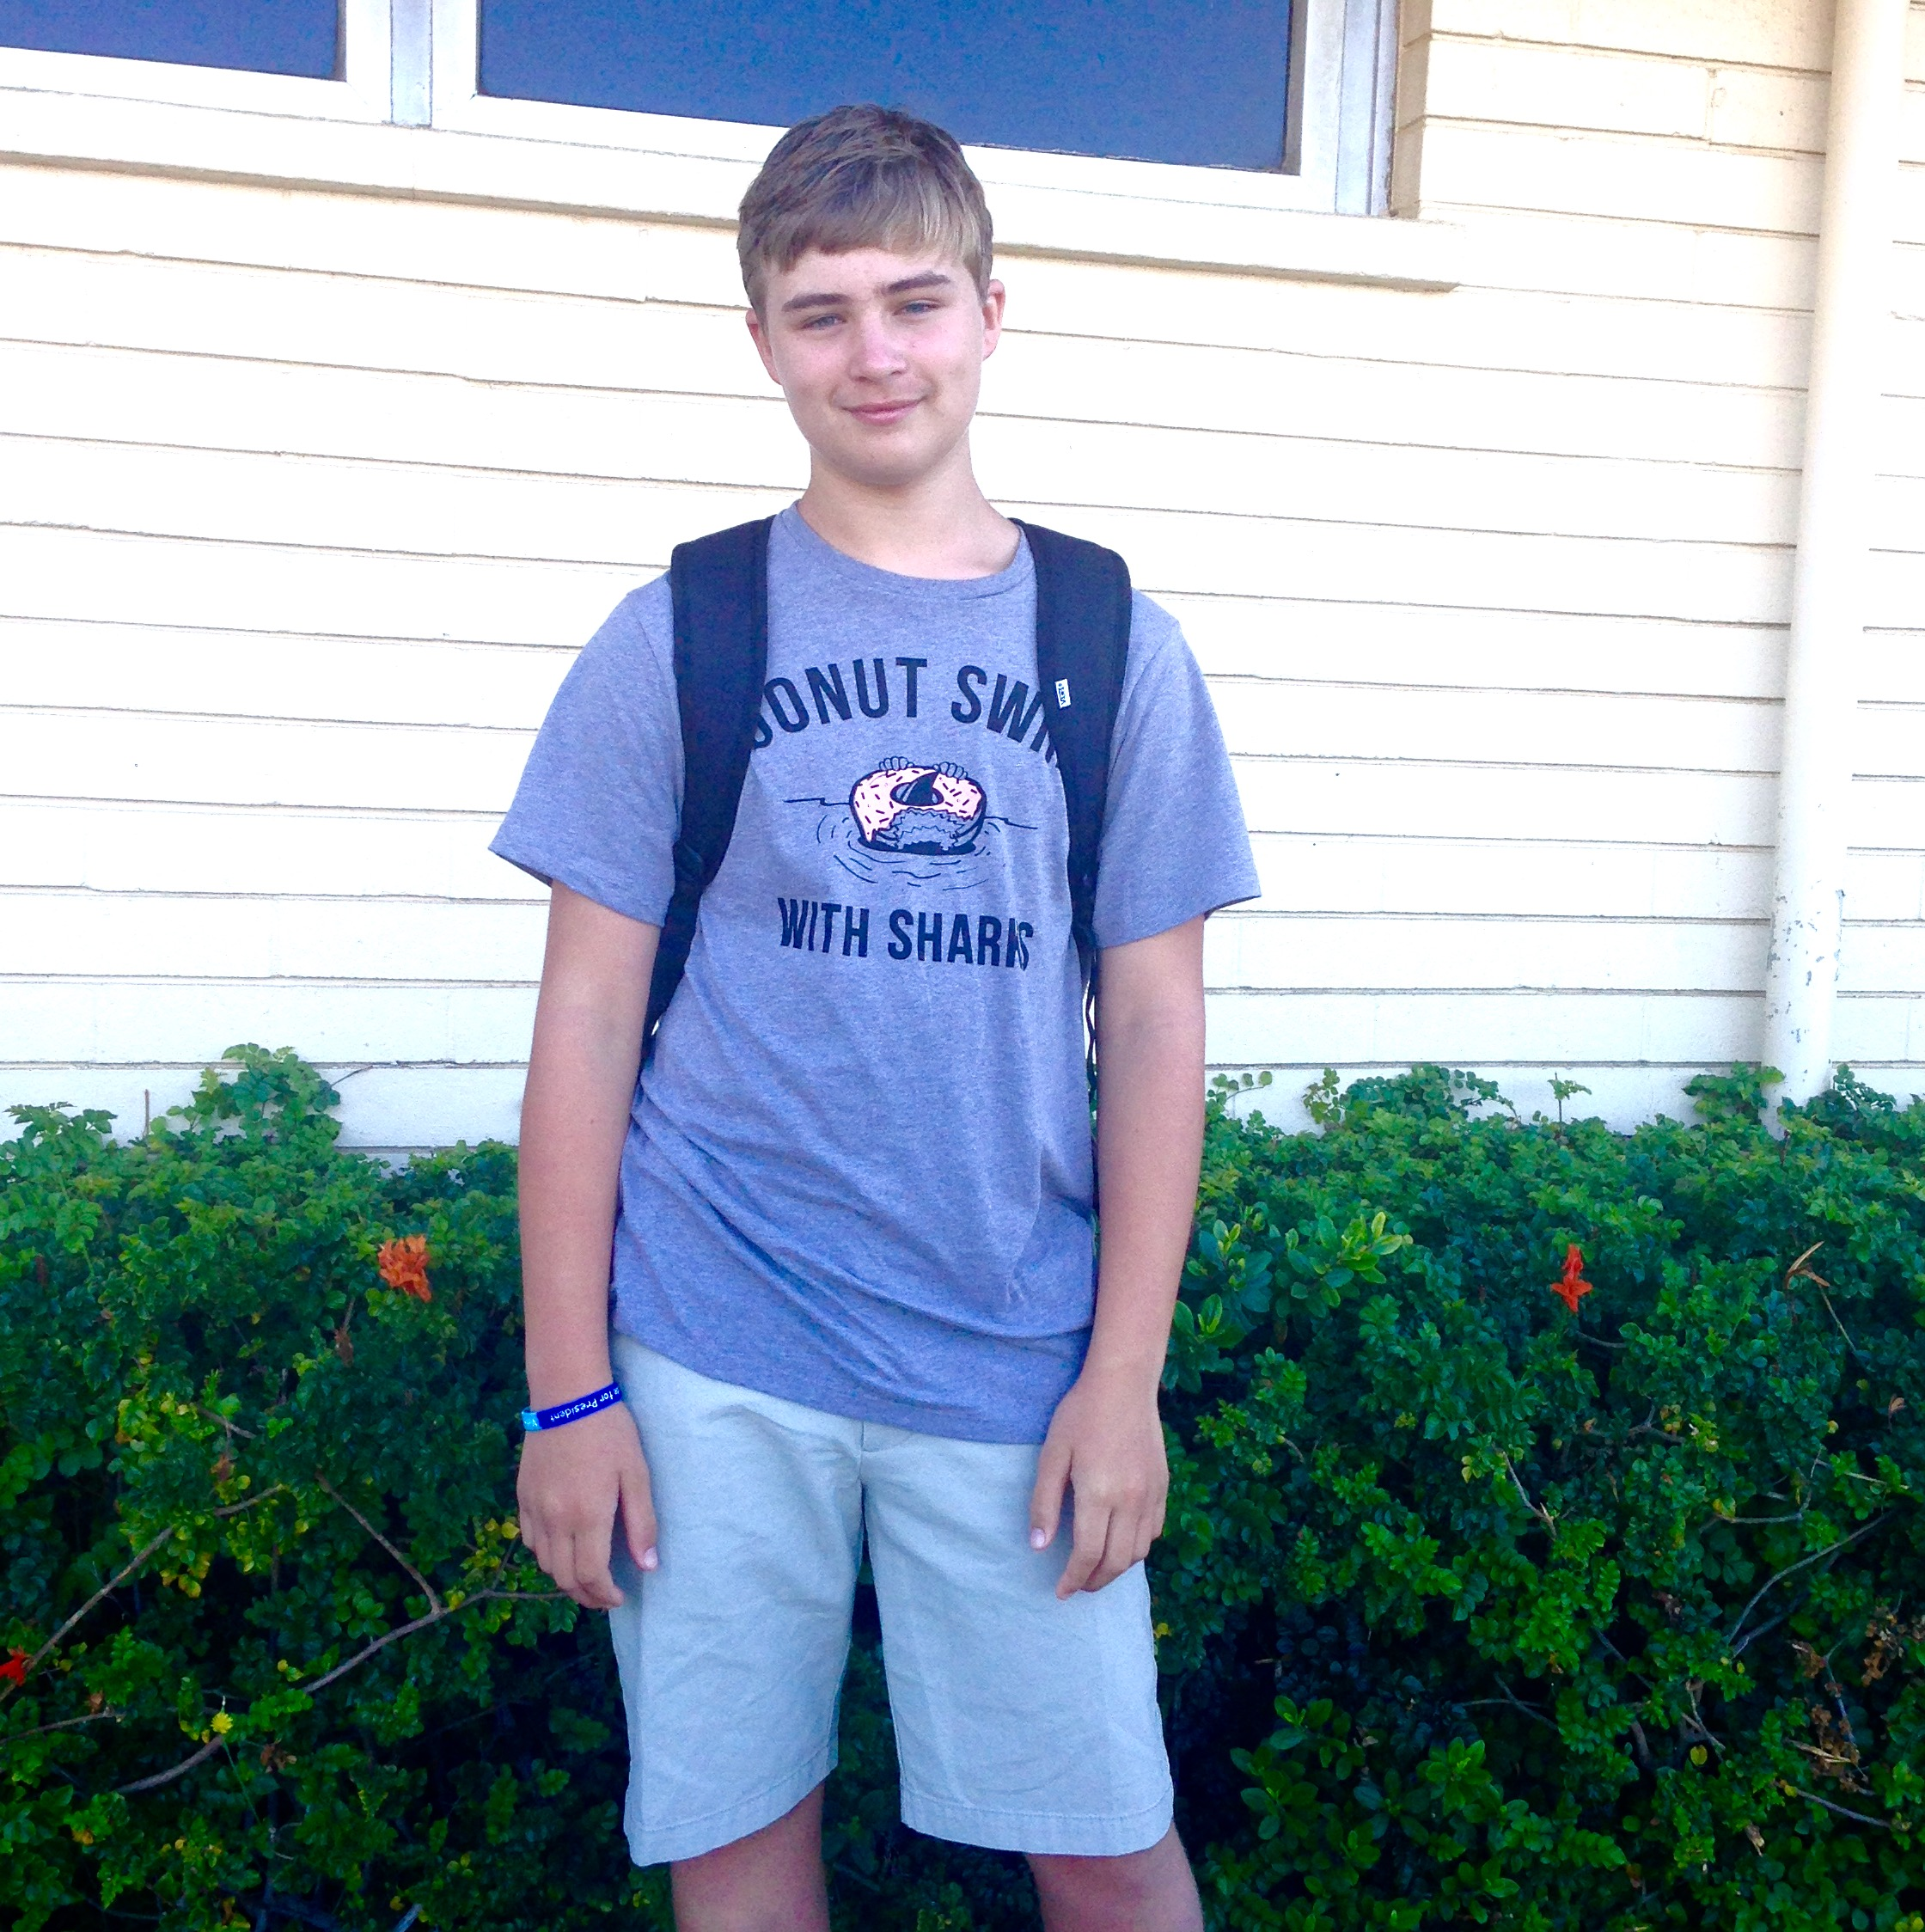 my 13-year-old's first day back to school in 8th grade!!!